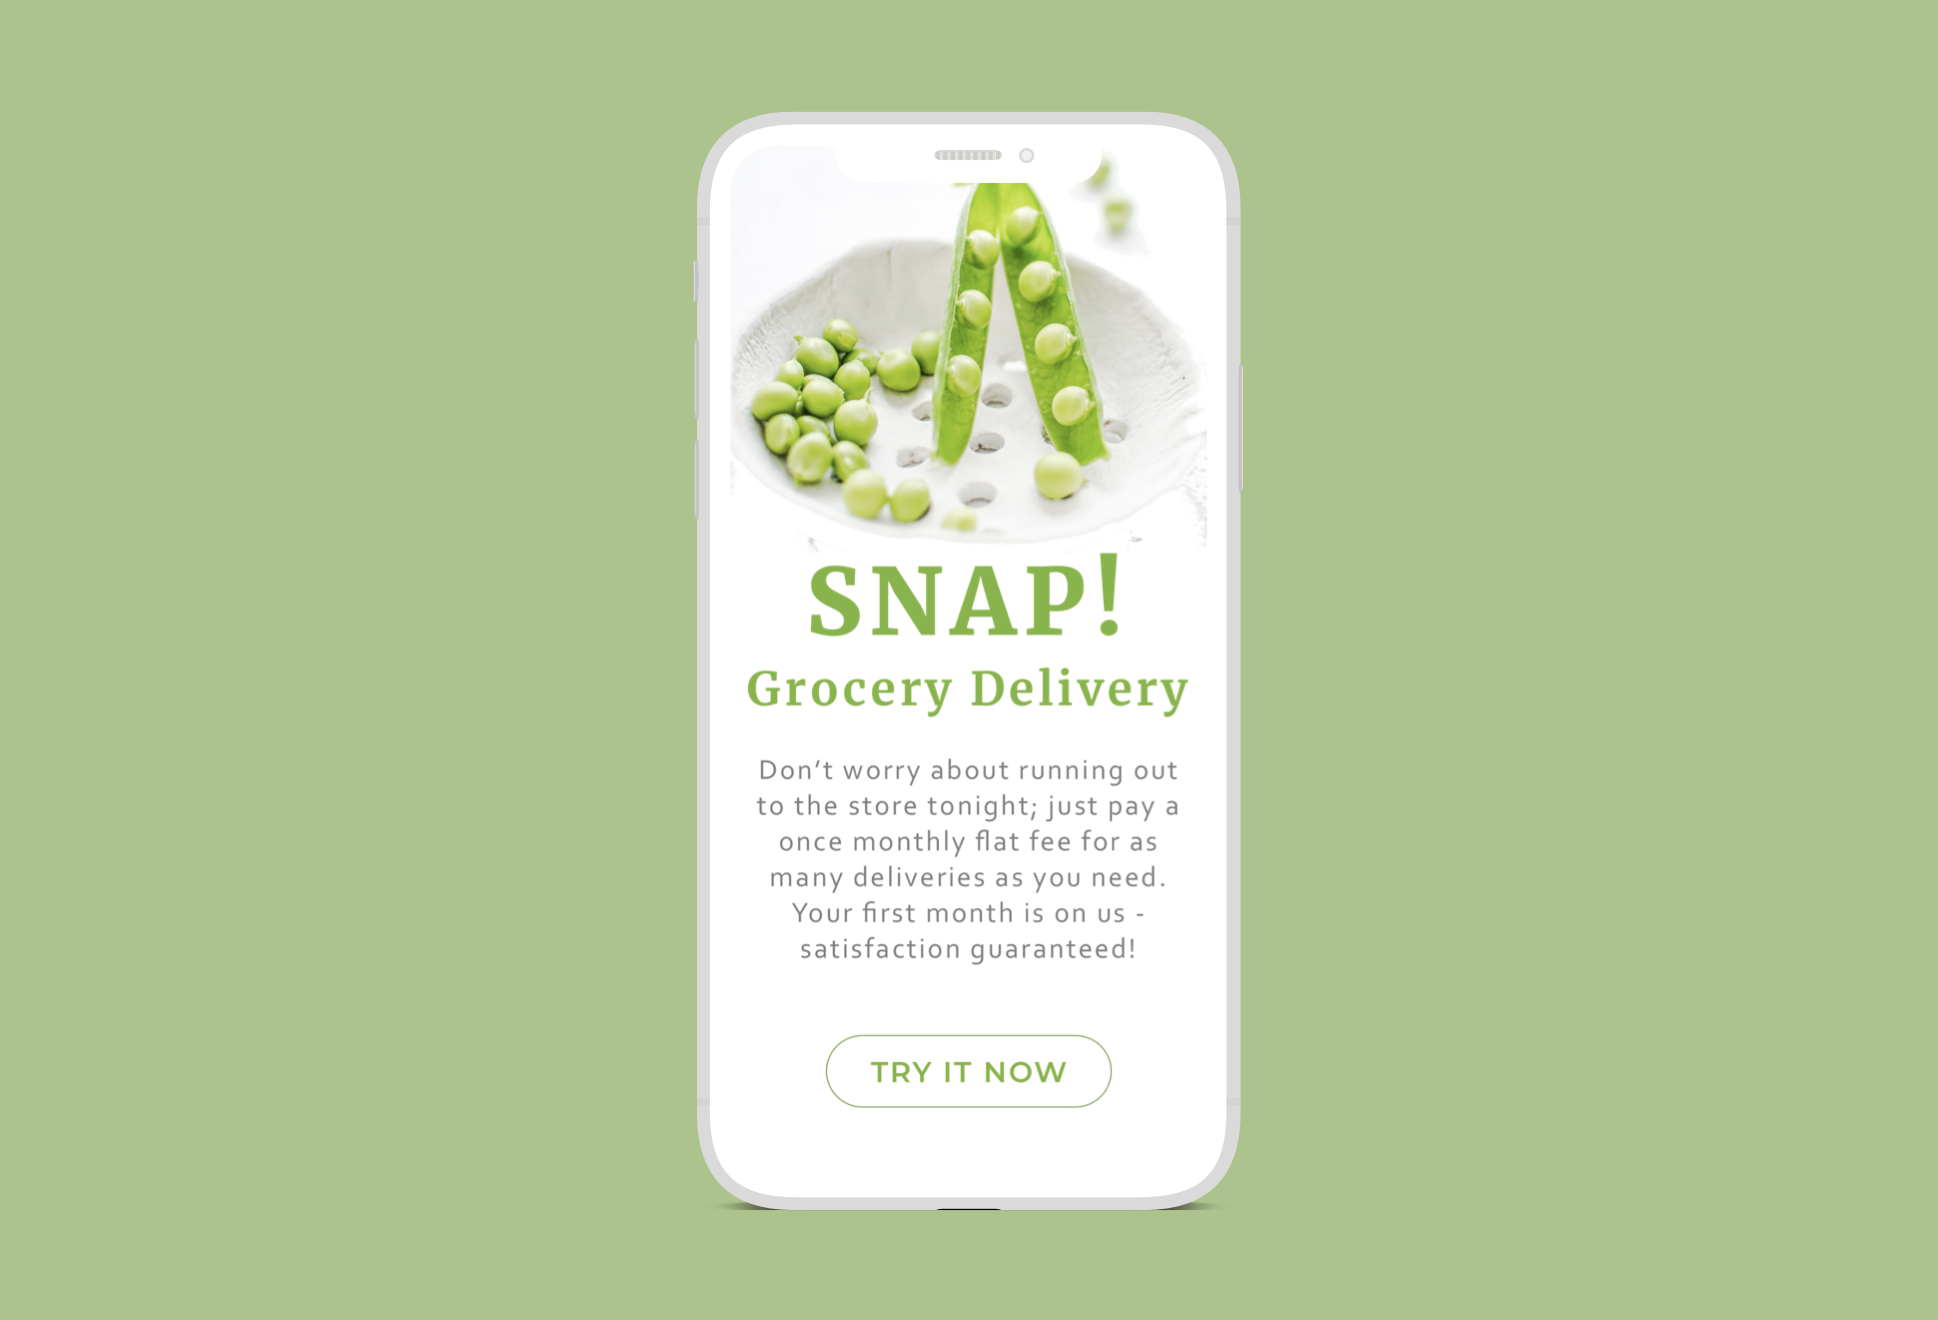 UX Writing Challenge: Day 4 - Scenario: A user is in their favorite supermarket. They open the supermarket's app on their phone to see what's on sale and are greeted by a promotion.Challenge: Write a promotional home screen for a subscription service that delivers groceries to the user once-a-month for a flat fee.